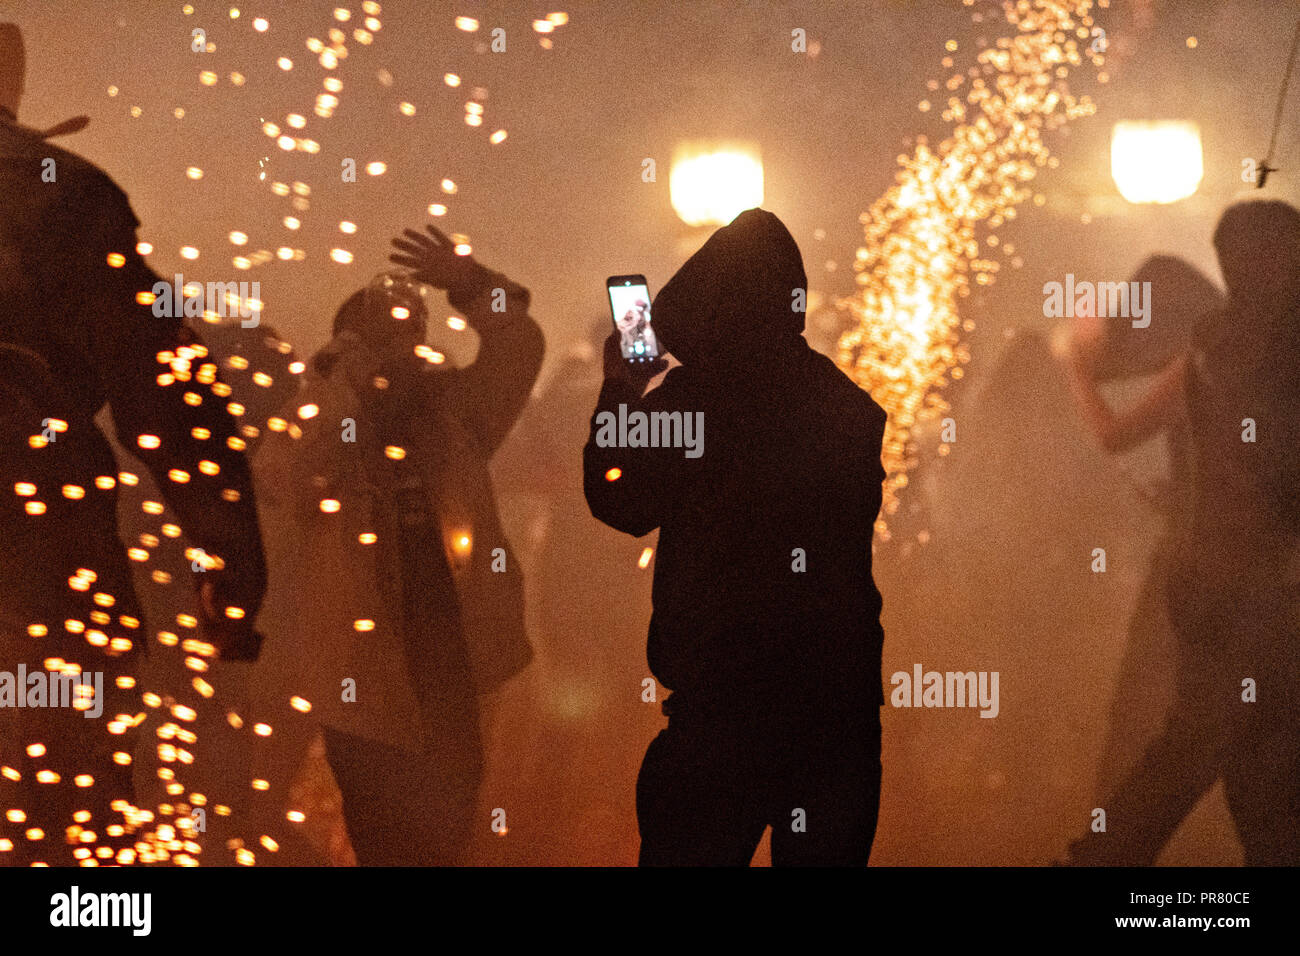 San Miguel de Allende, Mexico. 29th Sept 2018. A man wearing a hoodie takes a camera phone picture as sky rockets explode all around during the Alborada festival September 29, 2018 in San Miguel de Allende, Mexico. The unusual festival celebrates the cities patron saint with a two hour-long firework battle at 4am representing the struggle between Saint Michael and Lucifer. Credit: Planetpix/Alamy Live News - Stock Image